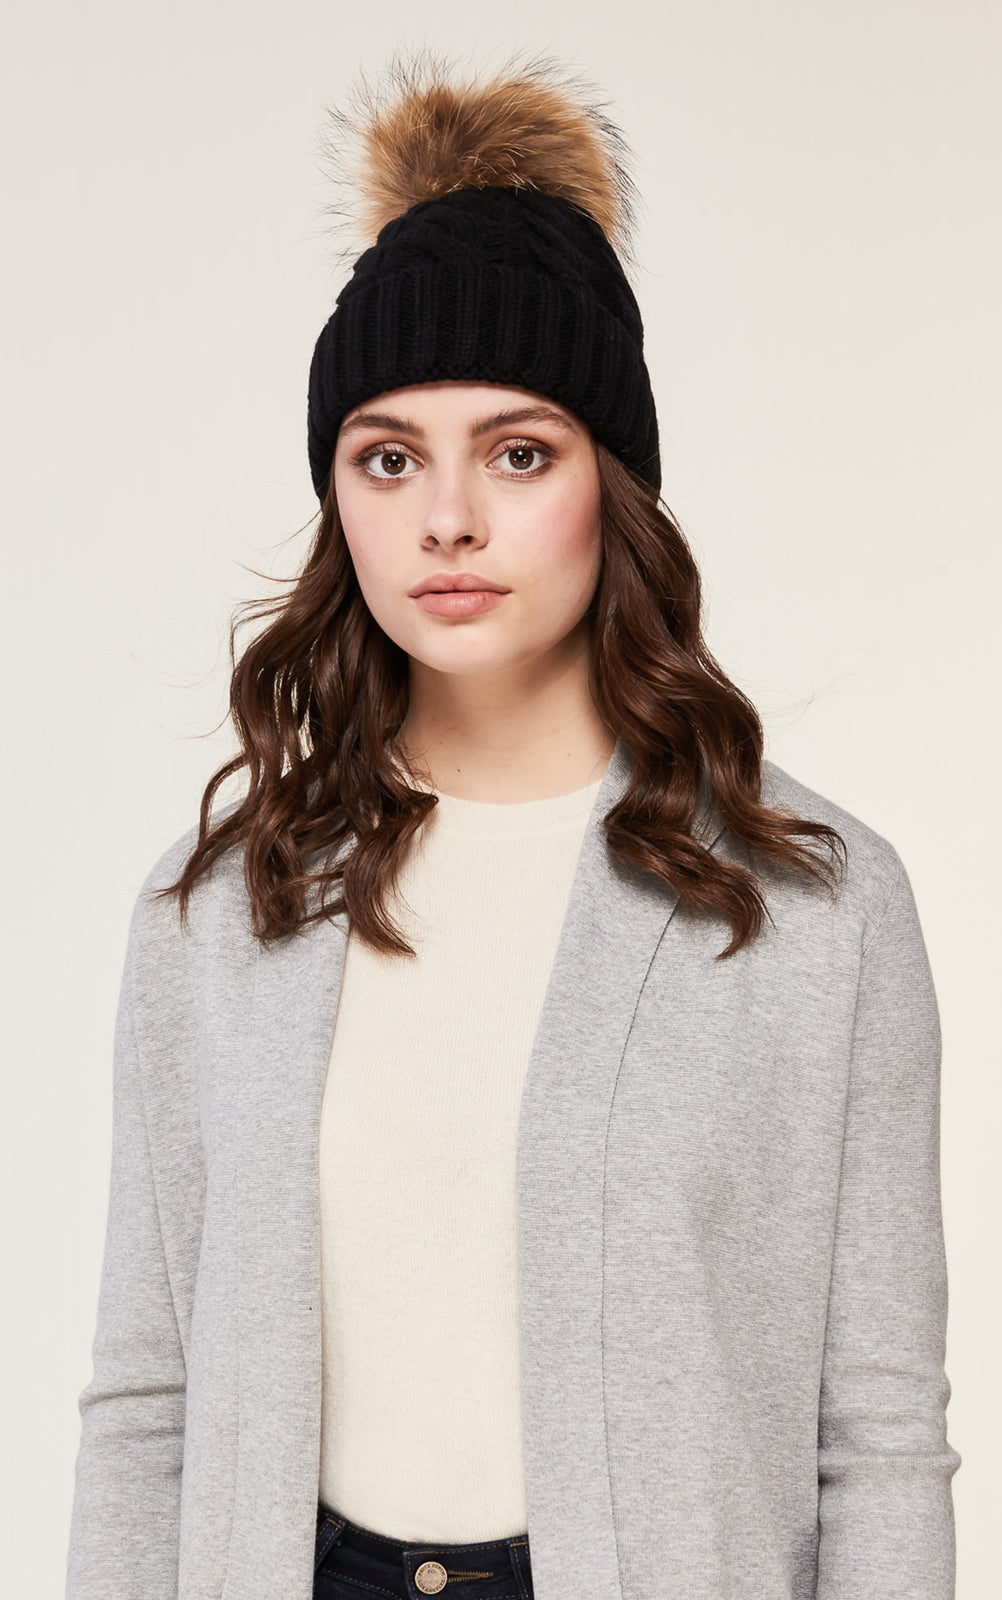 Pom pom beanie wool fur Soia Kyo black tan blush